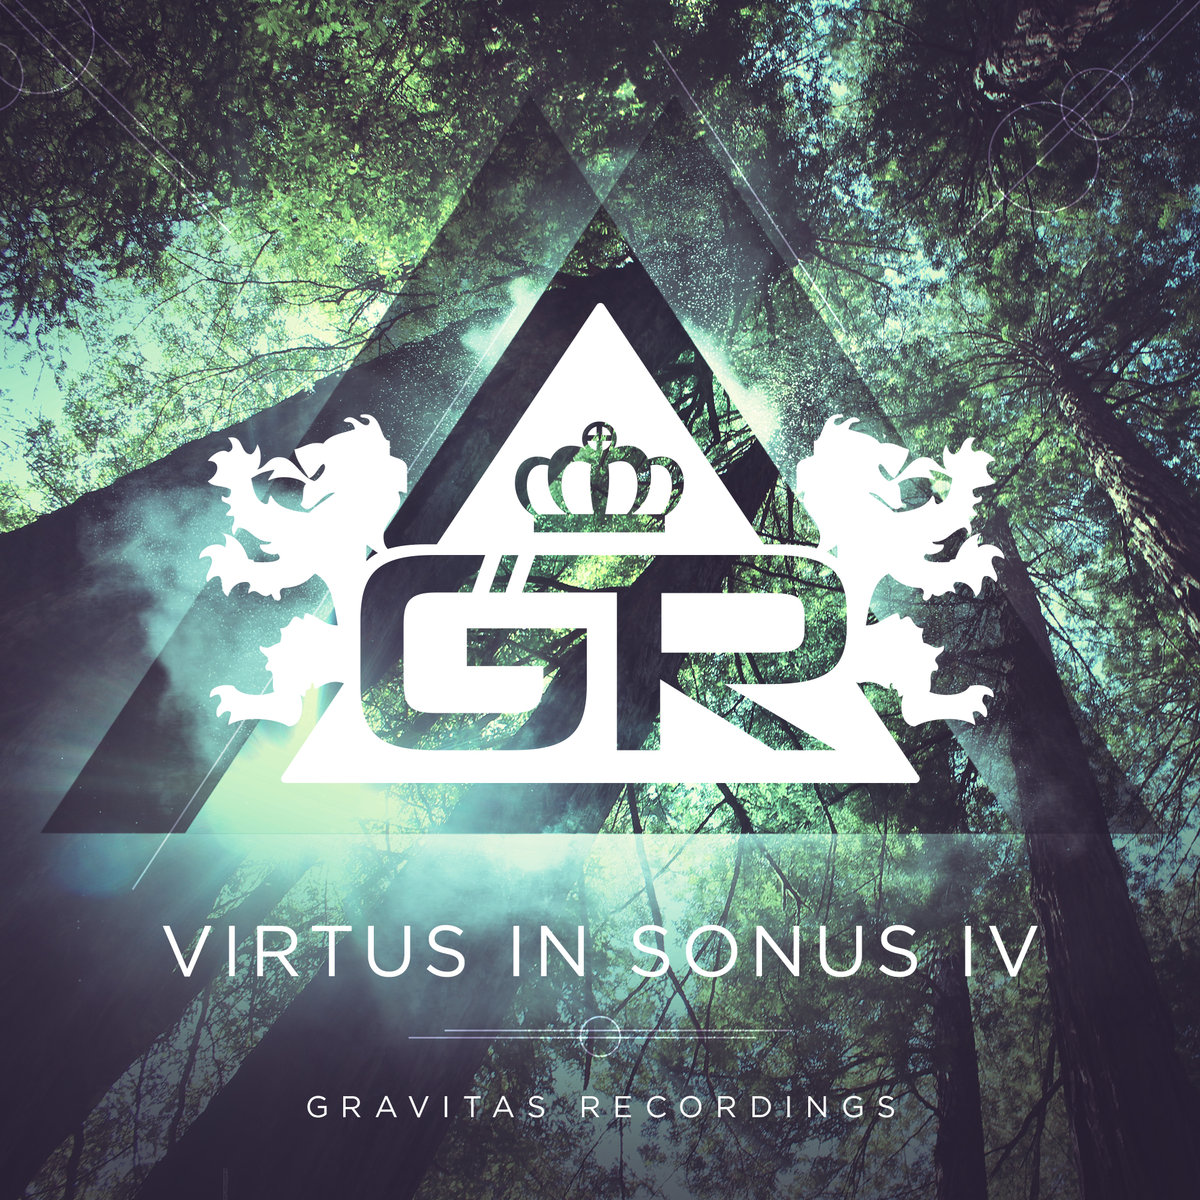 Bassline Drift - Sleepless Nights @ 'Virtus In Sonus IV' album (Austin)